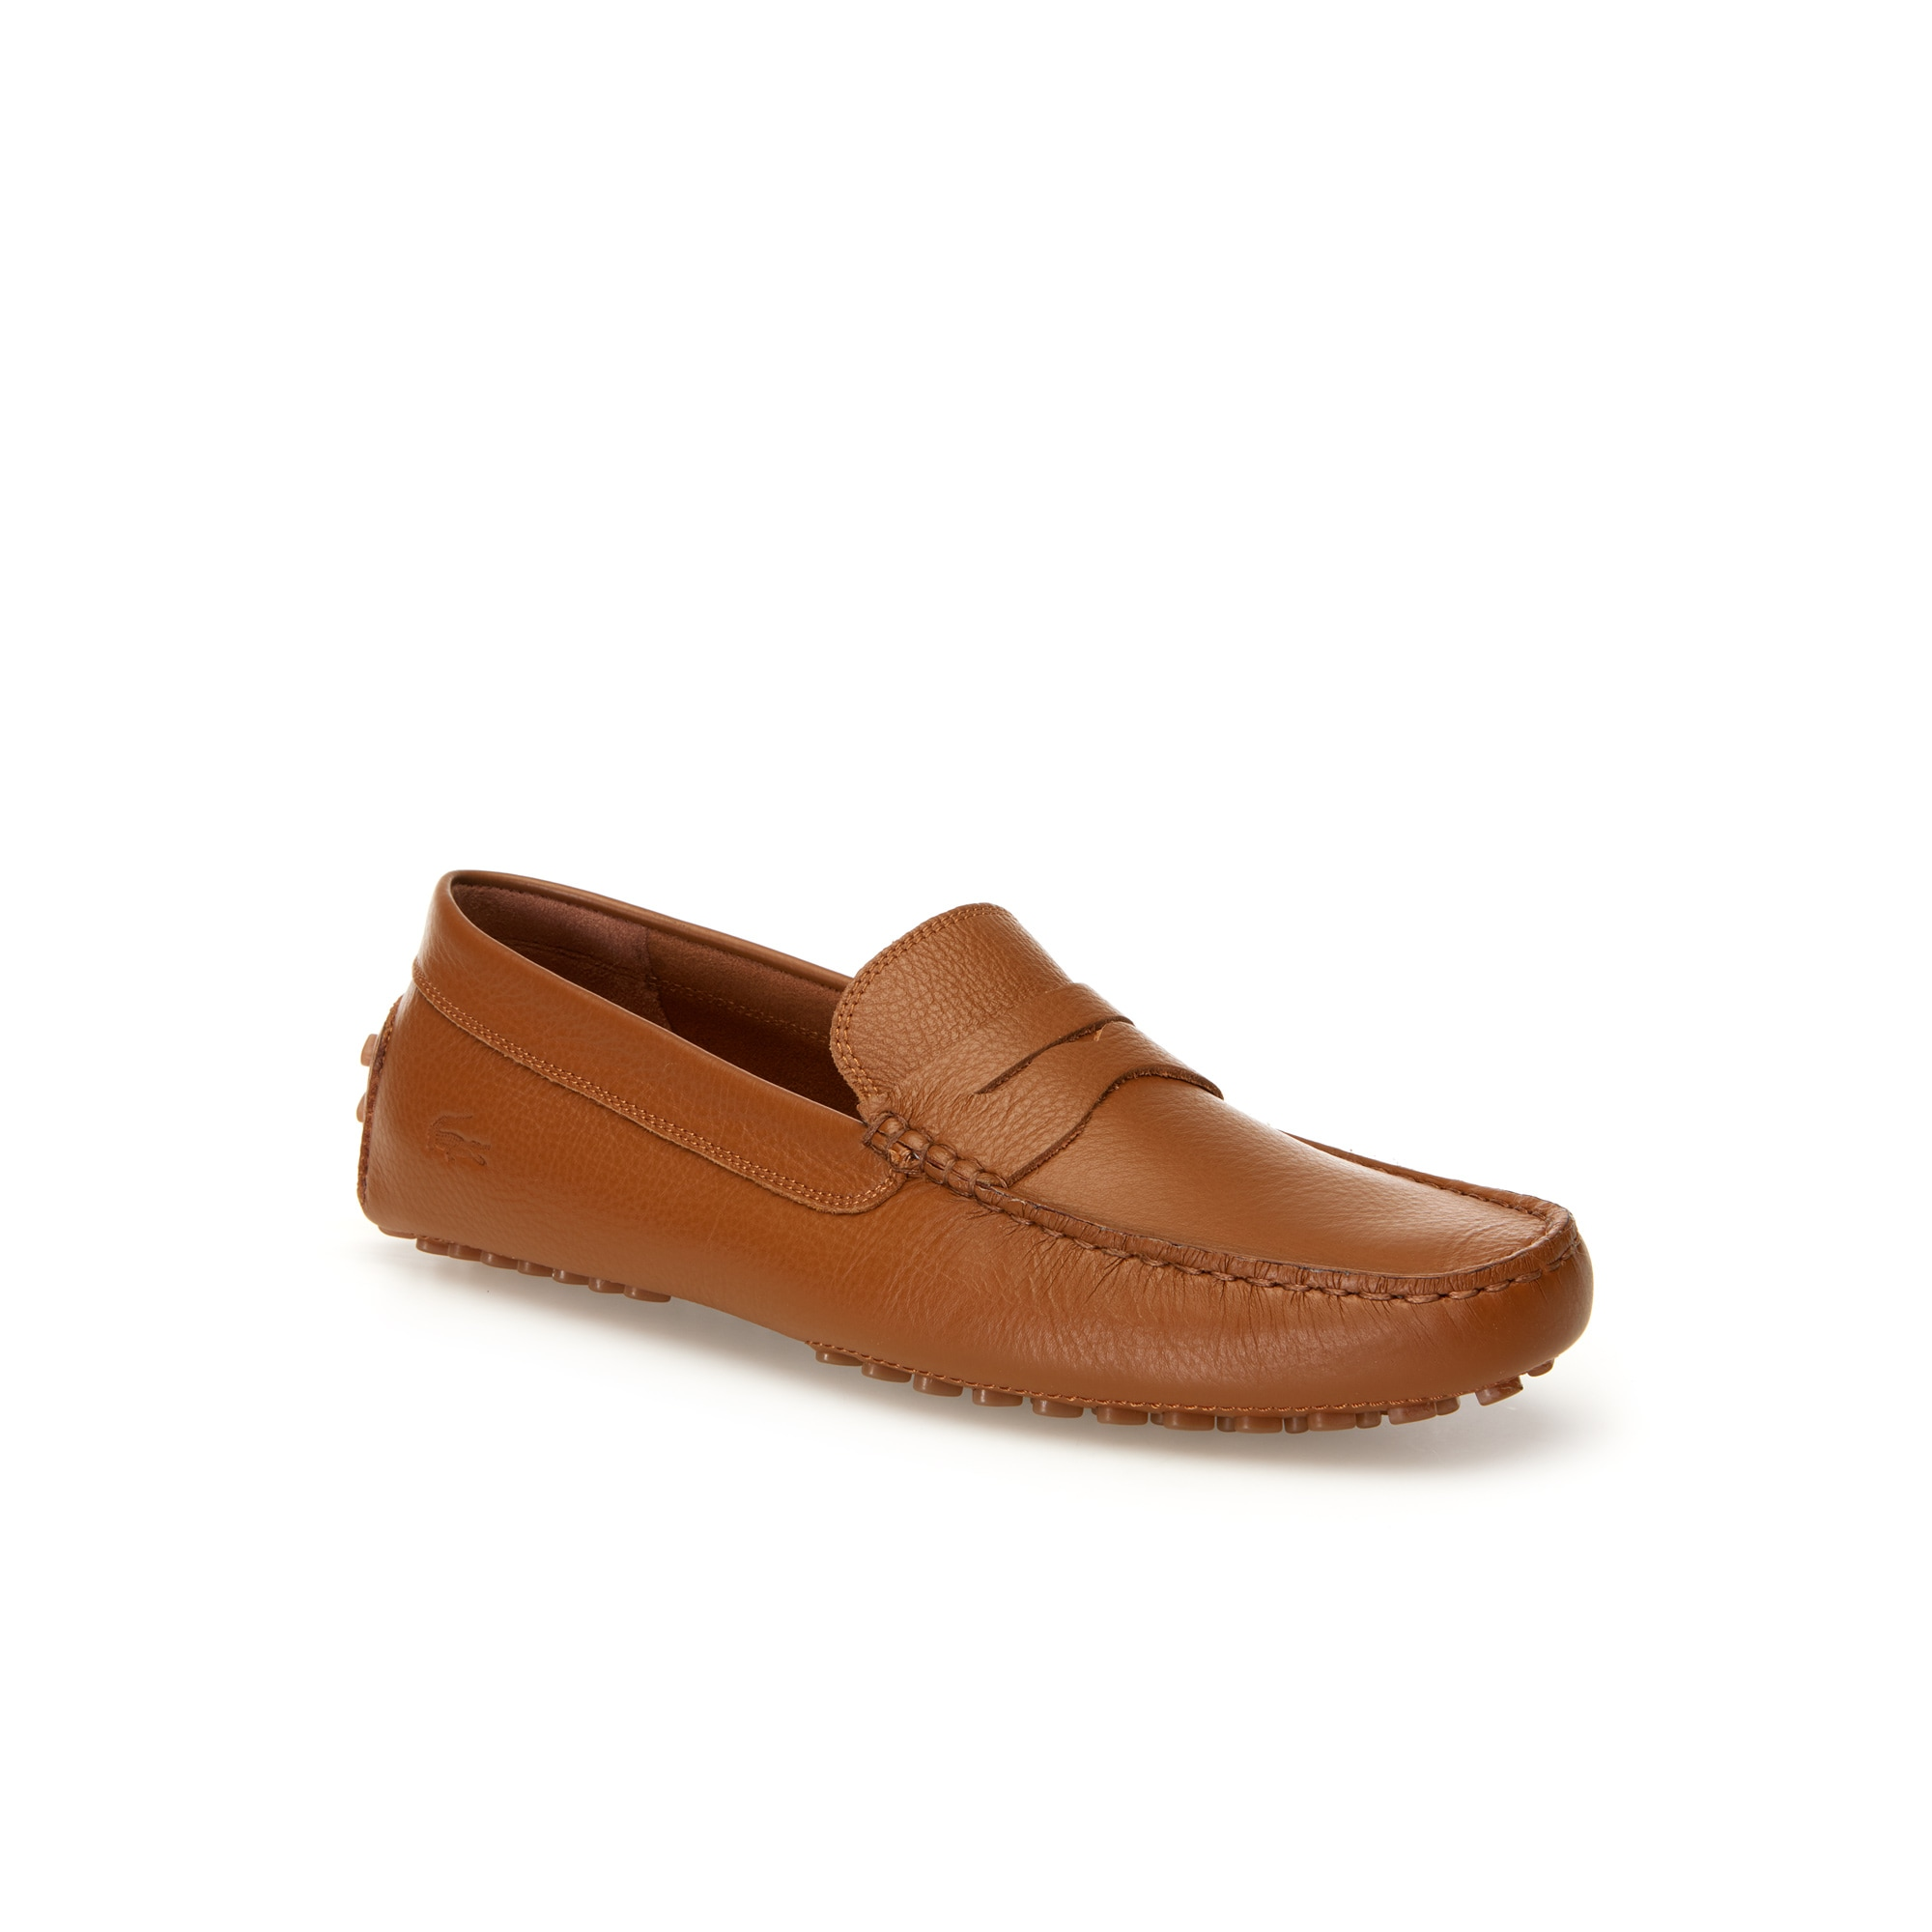 concours shoes - 62% OFF - tajpalace.net